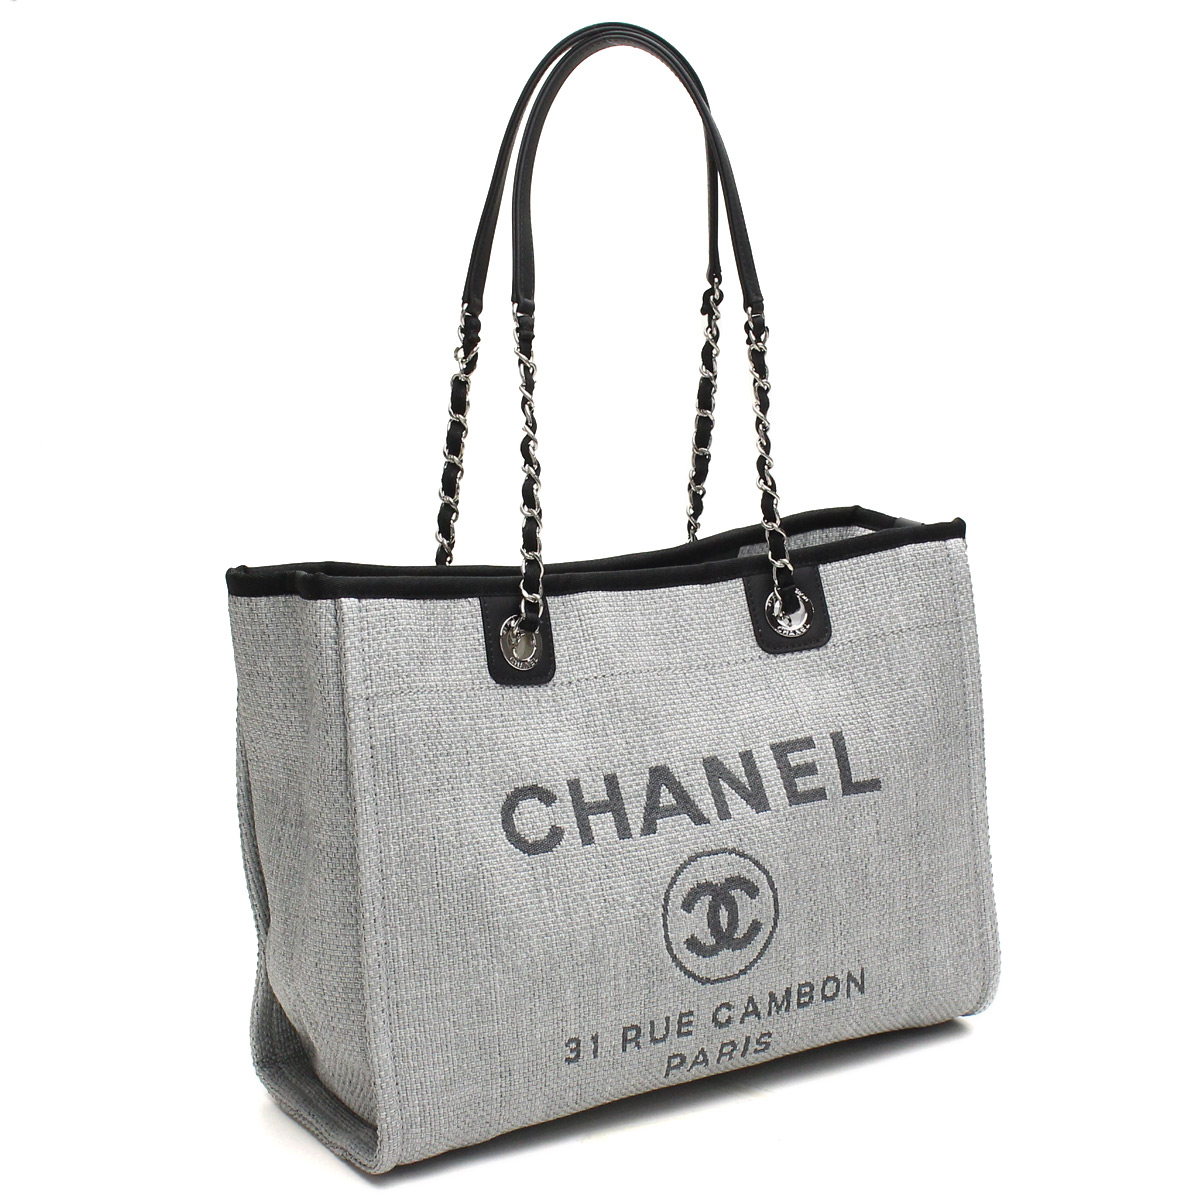 44d97bac445b Bighit The total brand wholesale  Chanel tote bag A67001 Greg la series(  taxfree send by EMS authentic A brand new item )